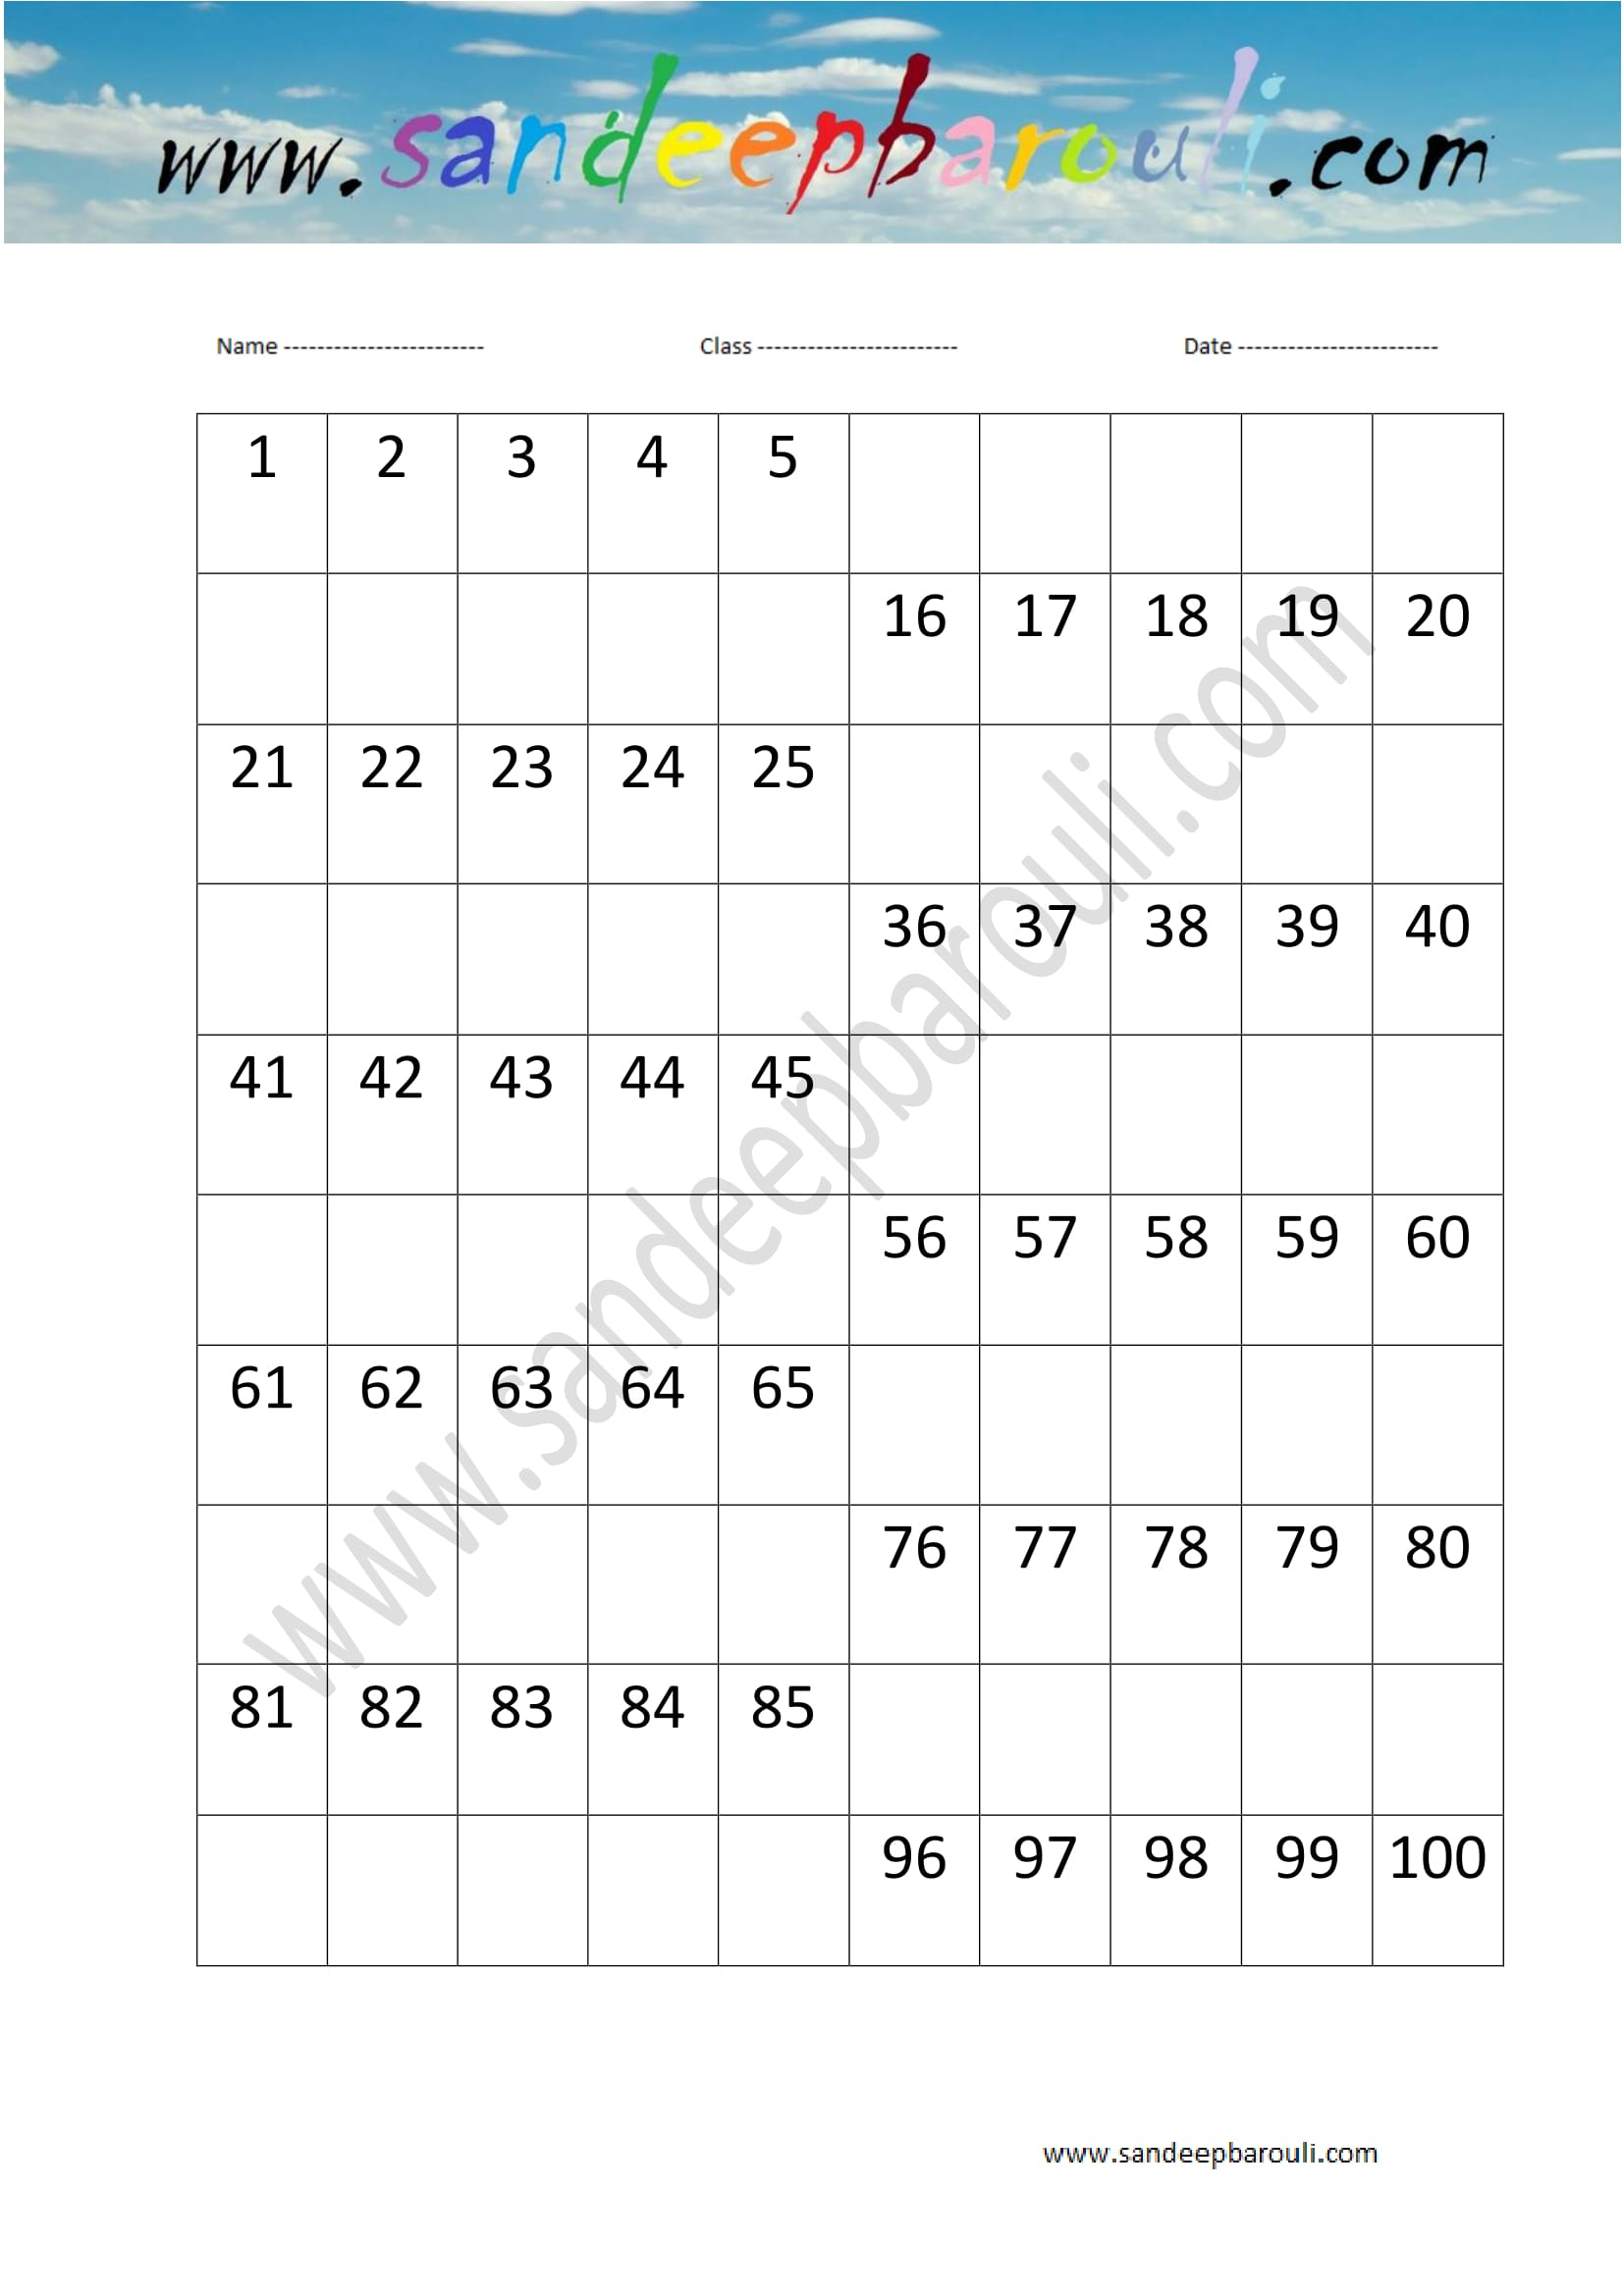 1 to 100 Counting Missing Numbers Worksheet 7 Educational Website – Missing Number Worksheets